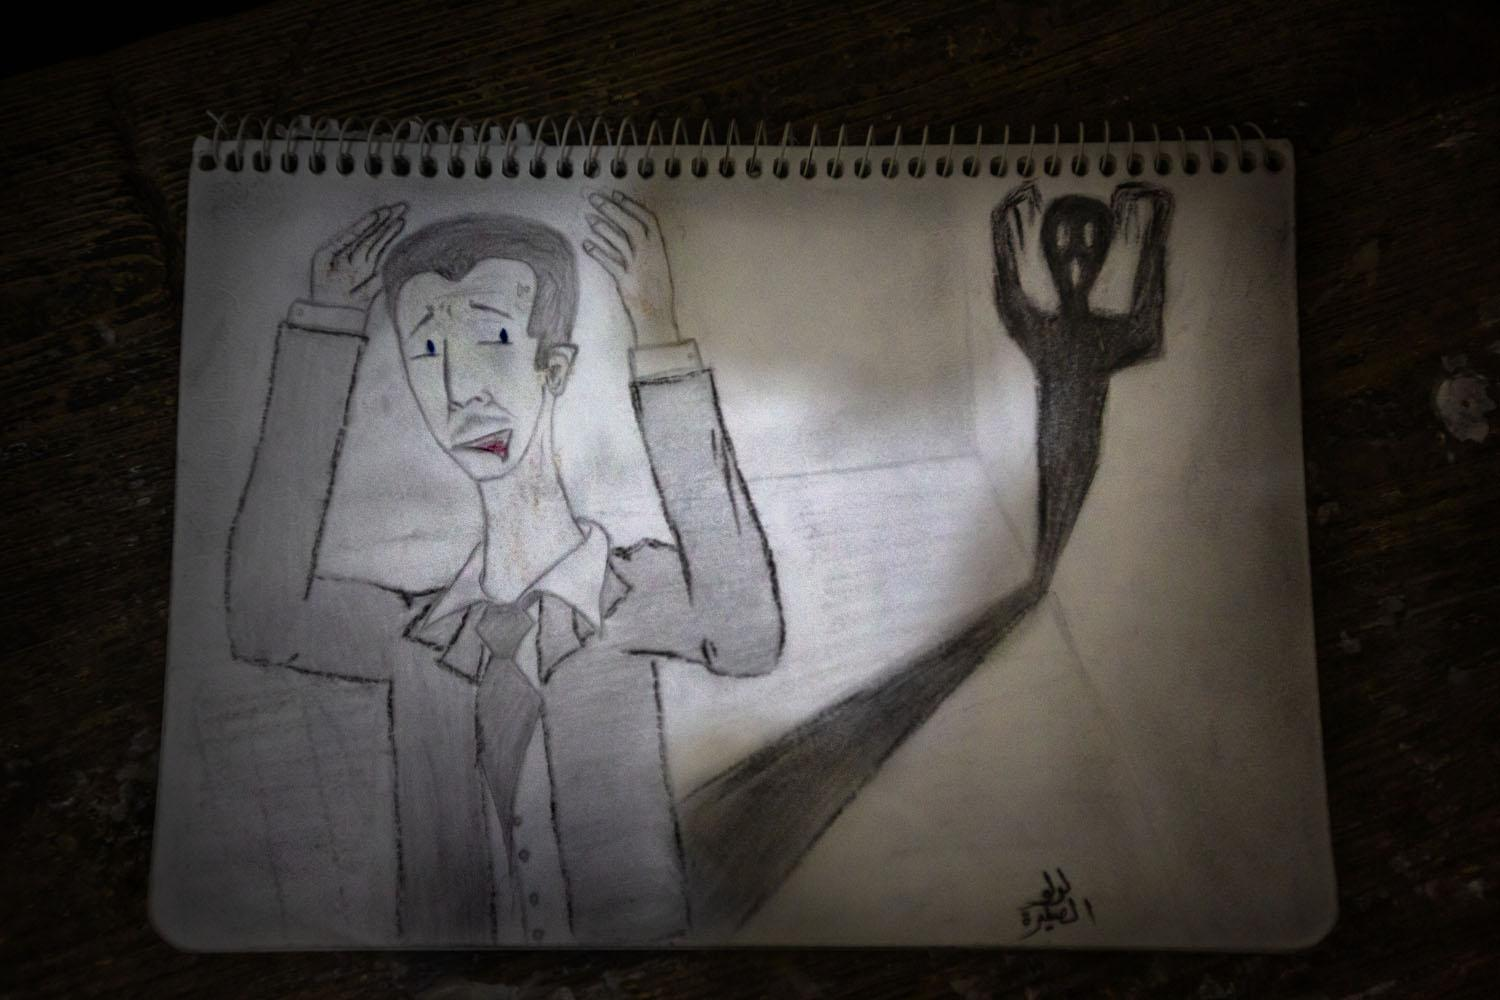 A drawing by an 18-year-old girl named Ahad representing the image she had of President Assad (he's afraid of his own shadow), she explained. Ahad's drawing resembles the painting by Edvard Munch entitled The Scream,though she had neverseen itbefore (Syria,2012).